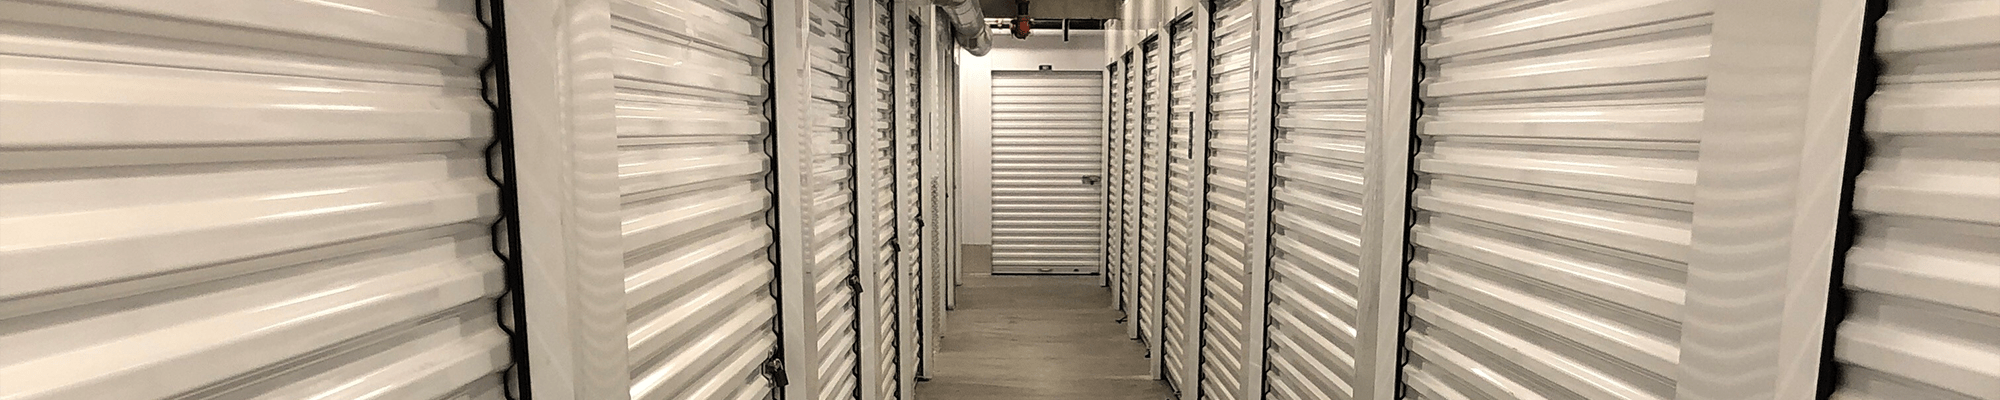 Contact us for your self storage needs in Chatsworth